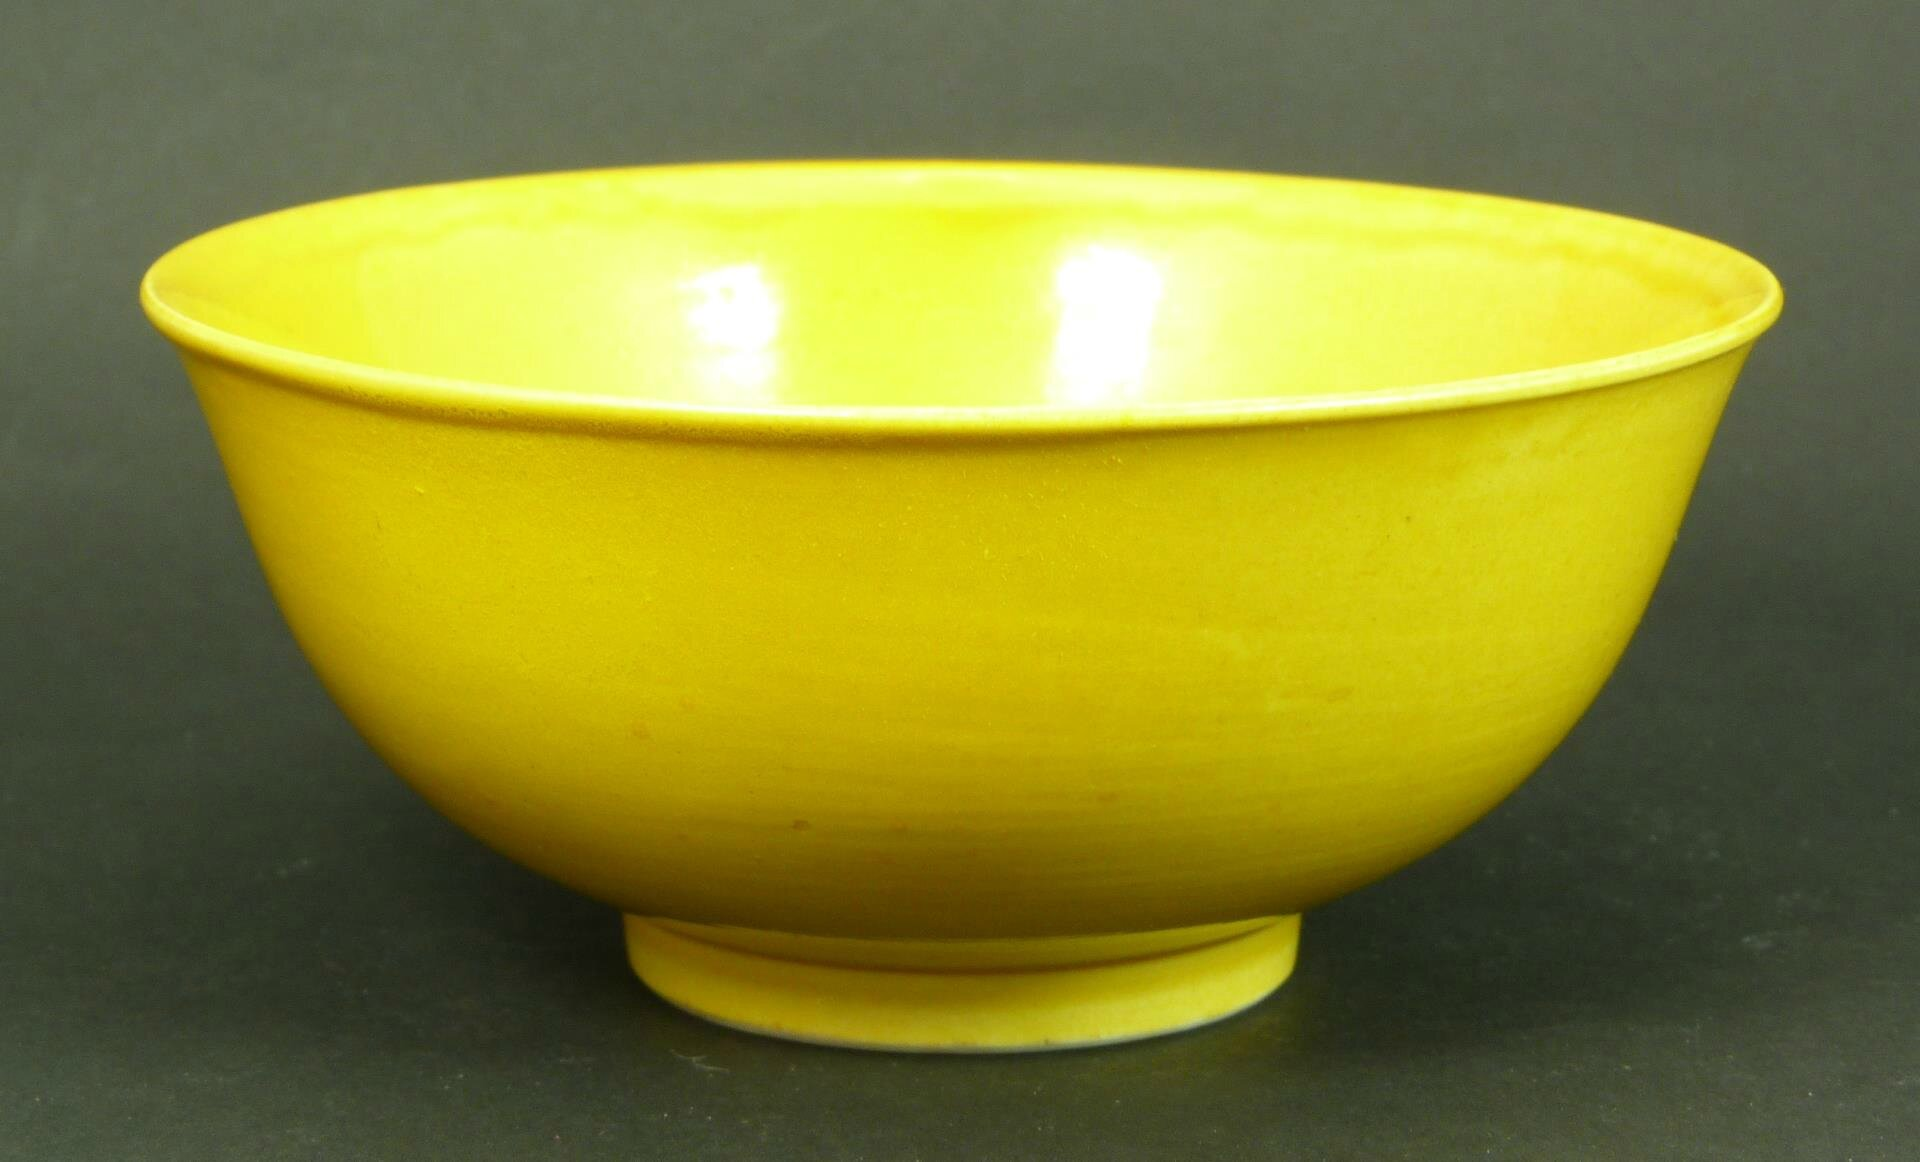 18th century Chinese yellow porcelain rice bowl